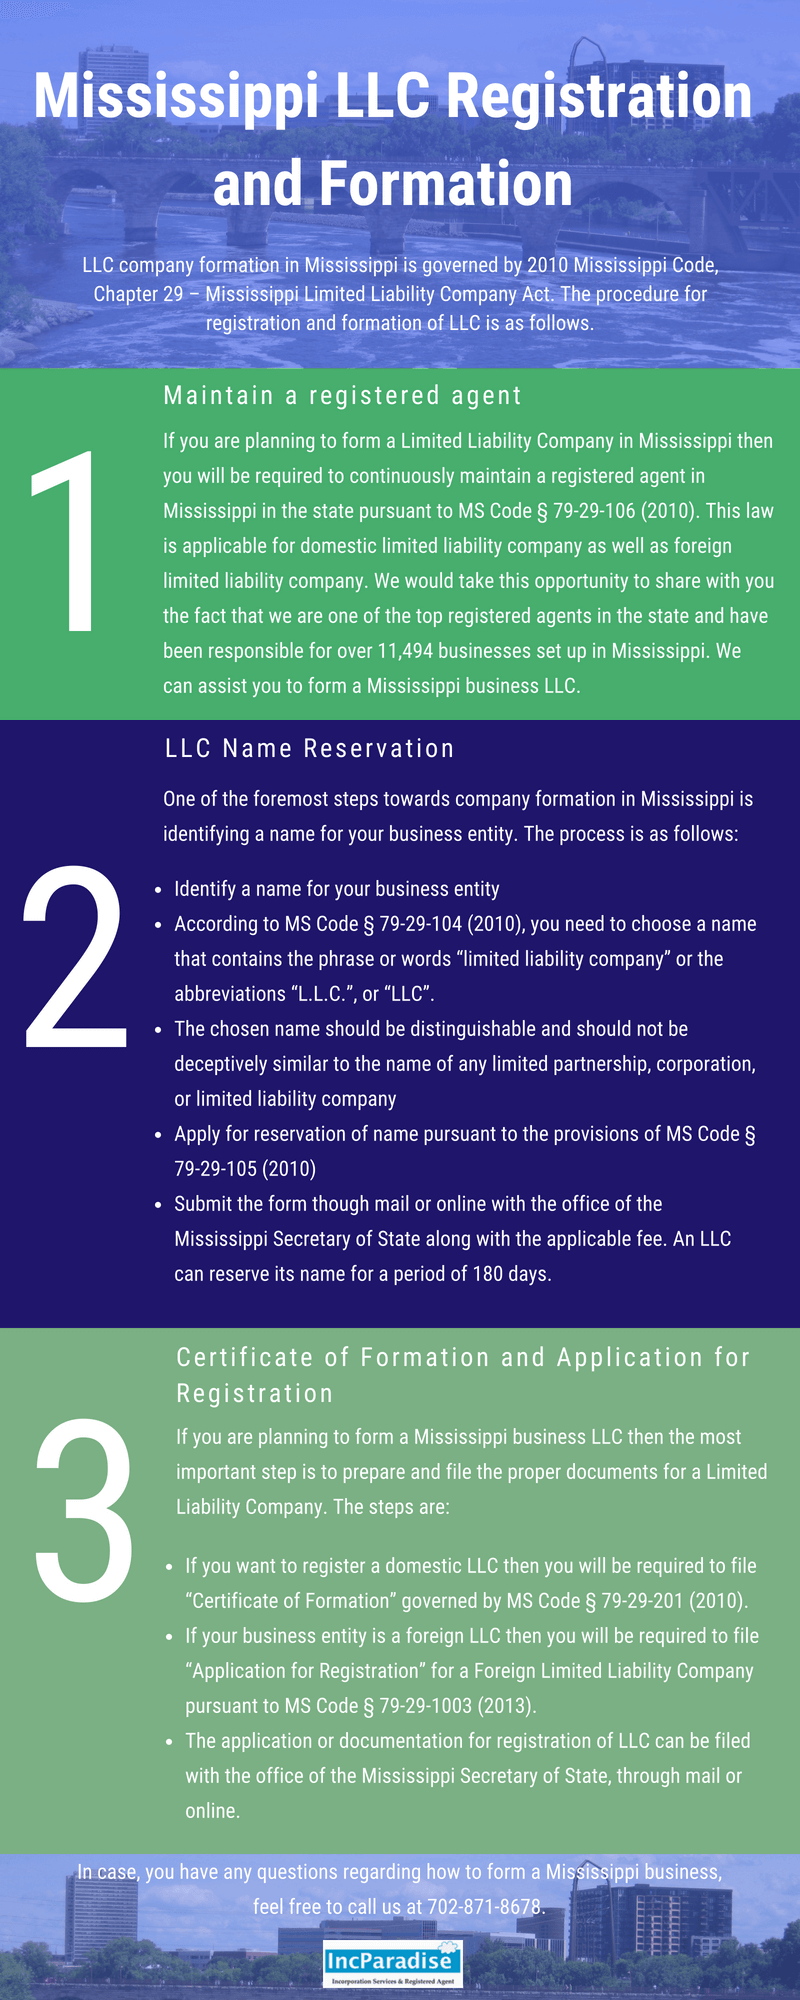 How to call the LLC